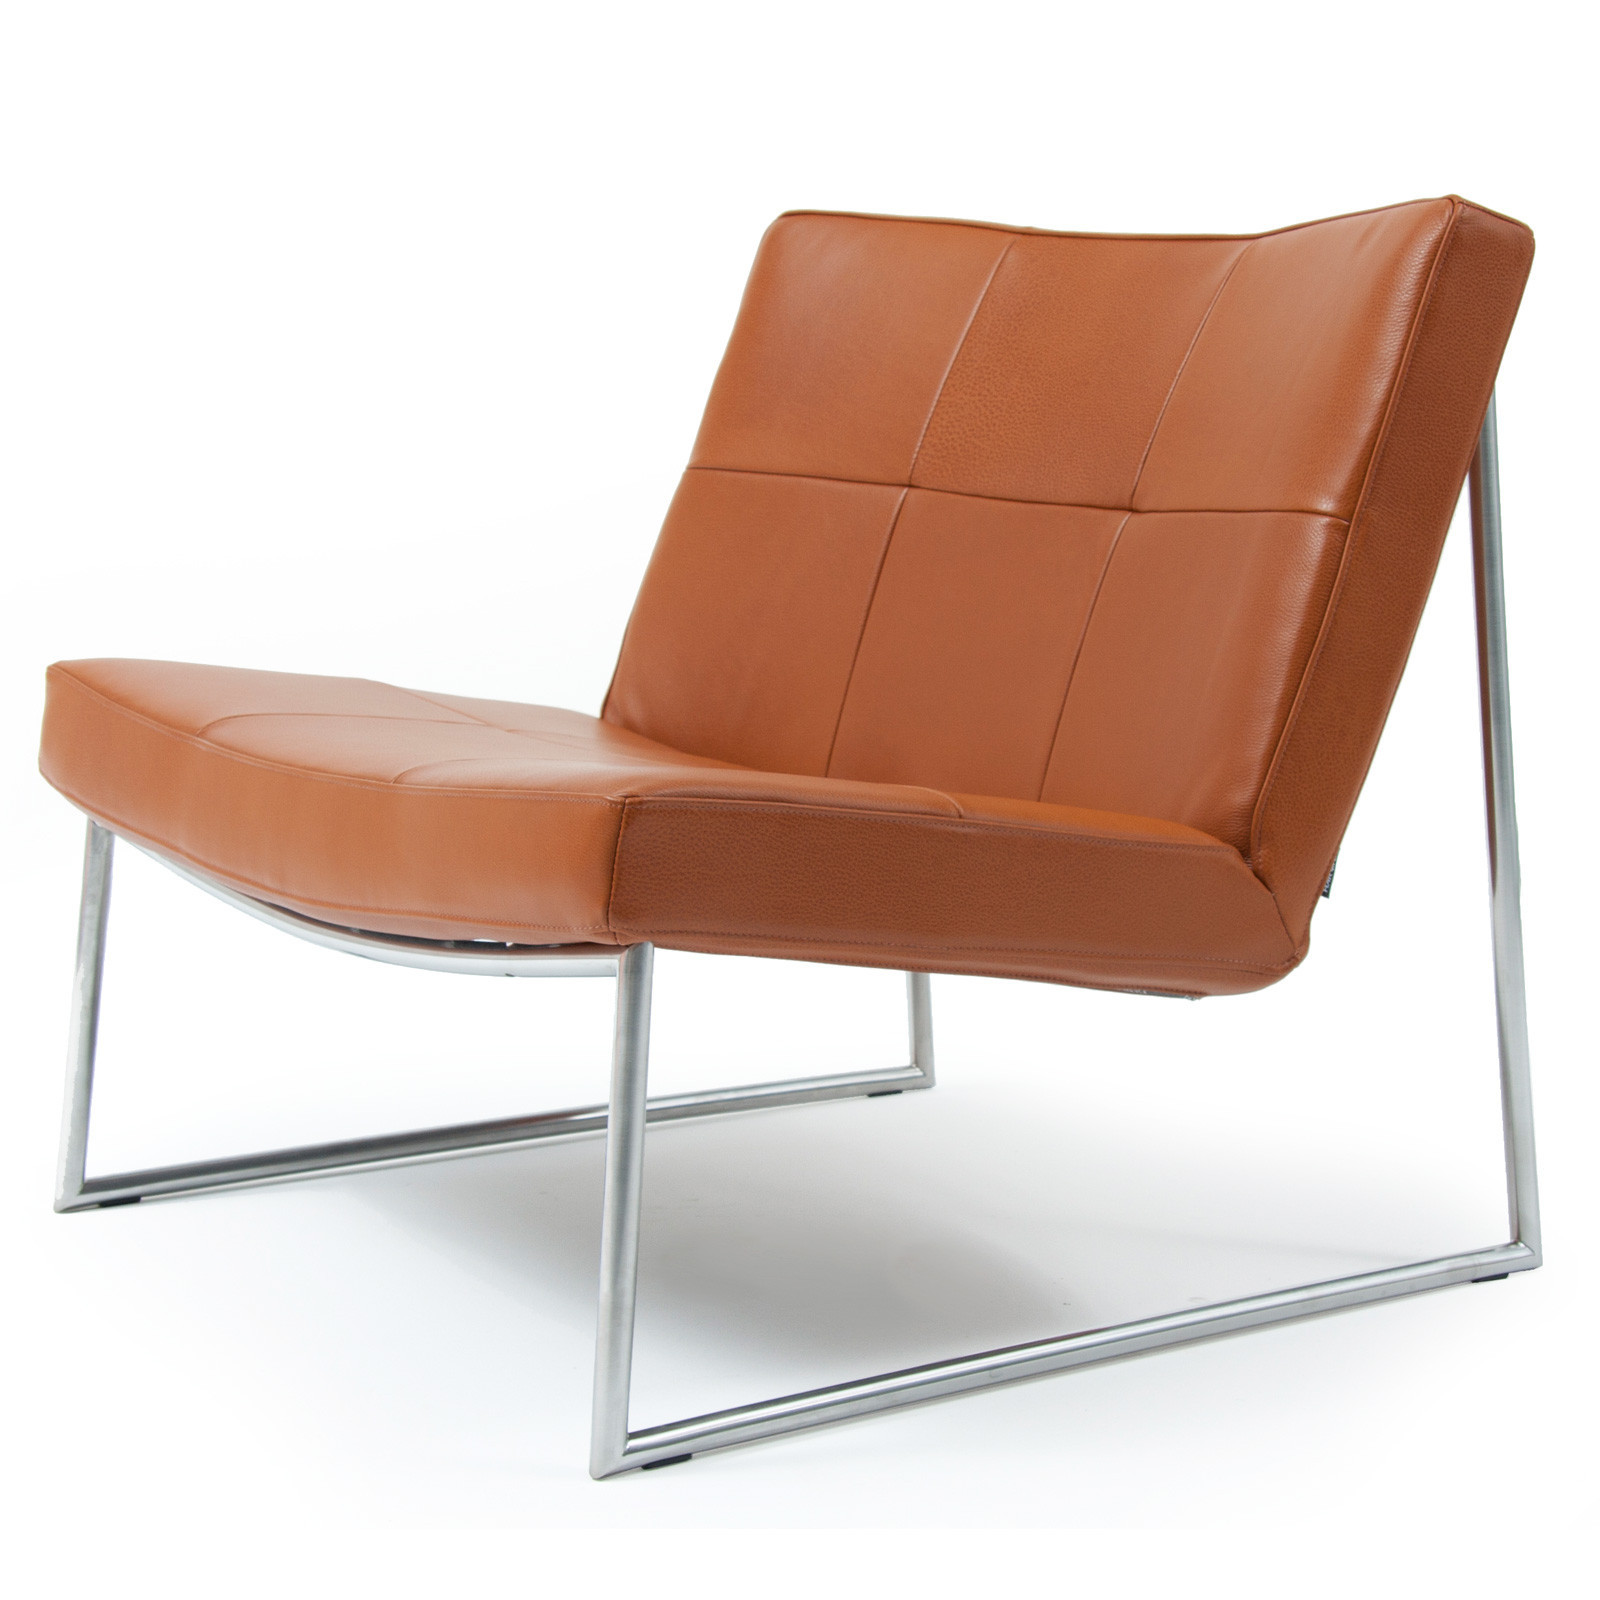 Harvink Design Fauteuil.Harvink Kokwooncenter